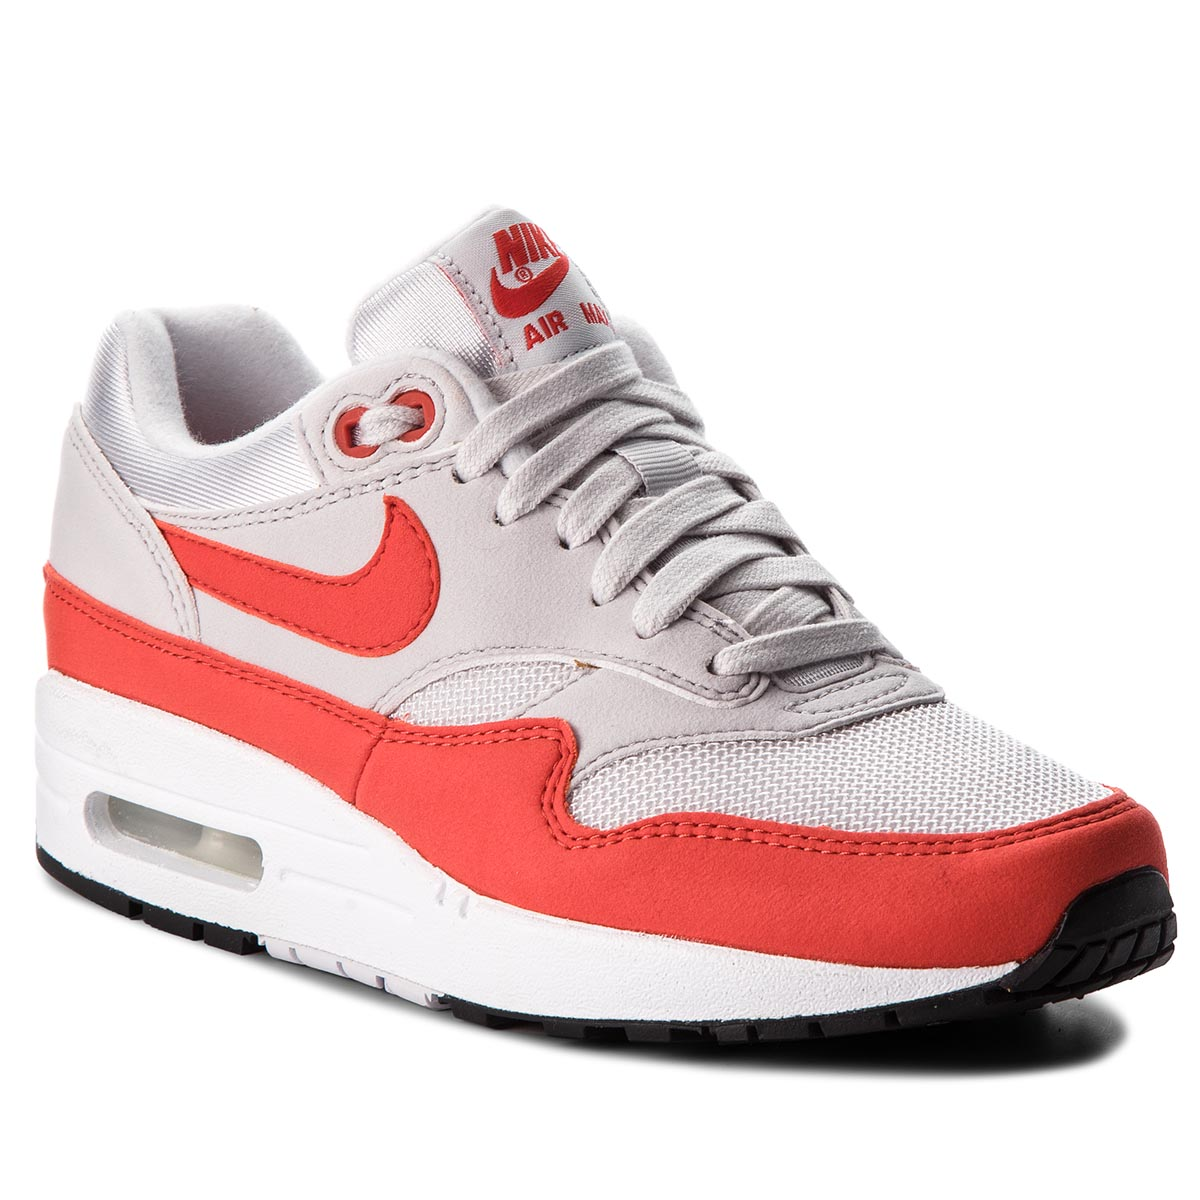 76bccefc3997 Shoes NIKE - Air Max 1 319986 115 White Black Wolf Grey - Sneakers ...